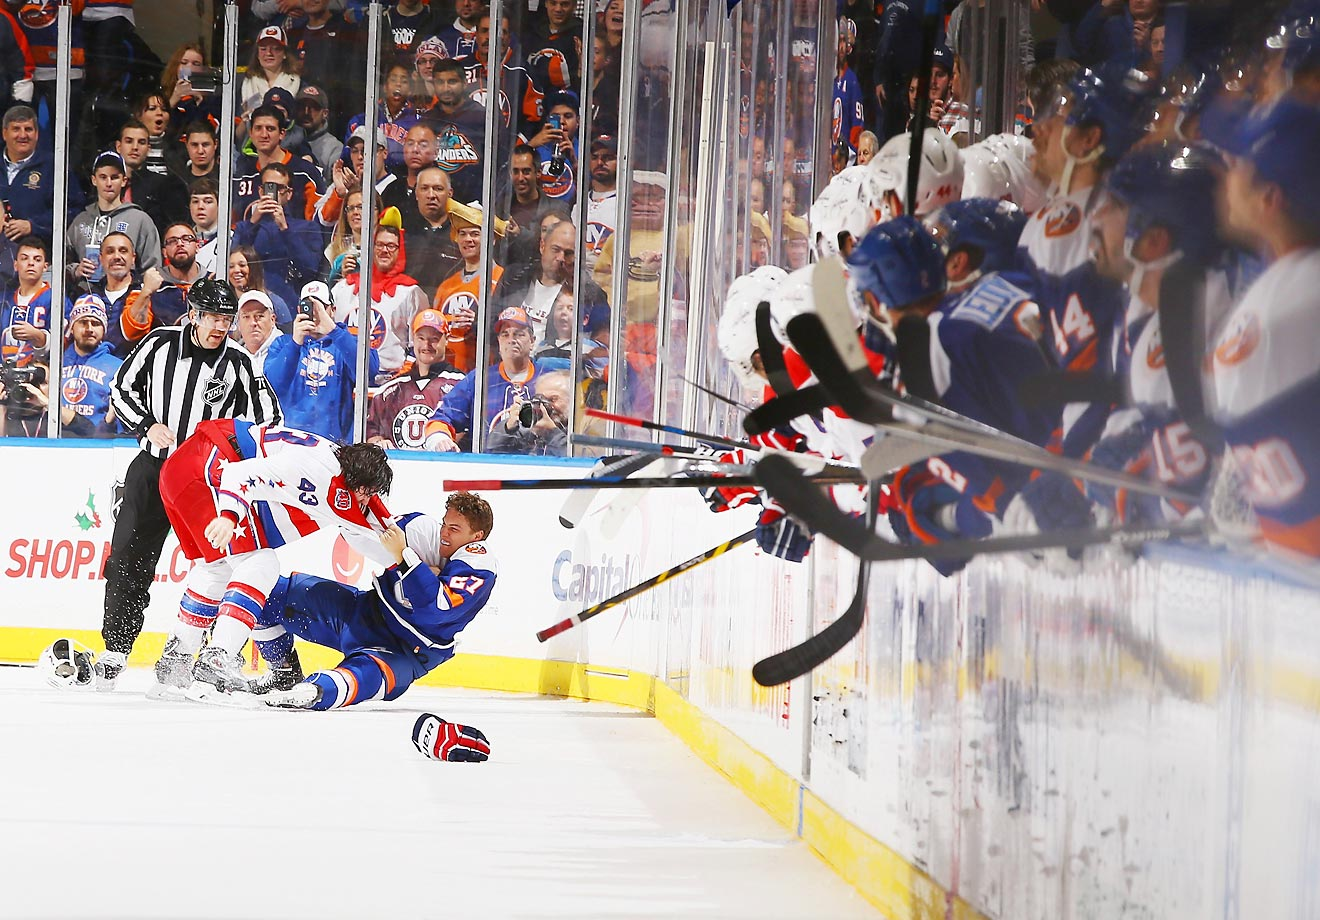 Anders Lee of the New York Islanders fights with Tom Wilson of the Washington Capitals. The Capitals won 5-2.